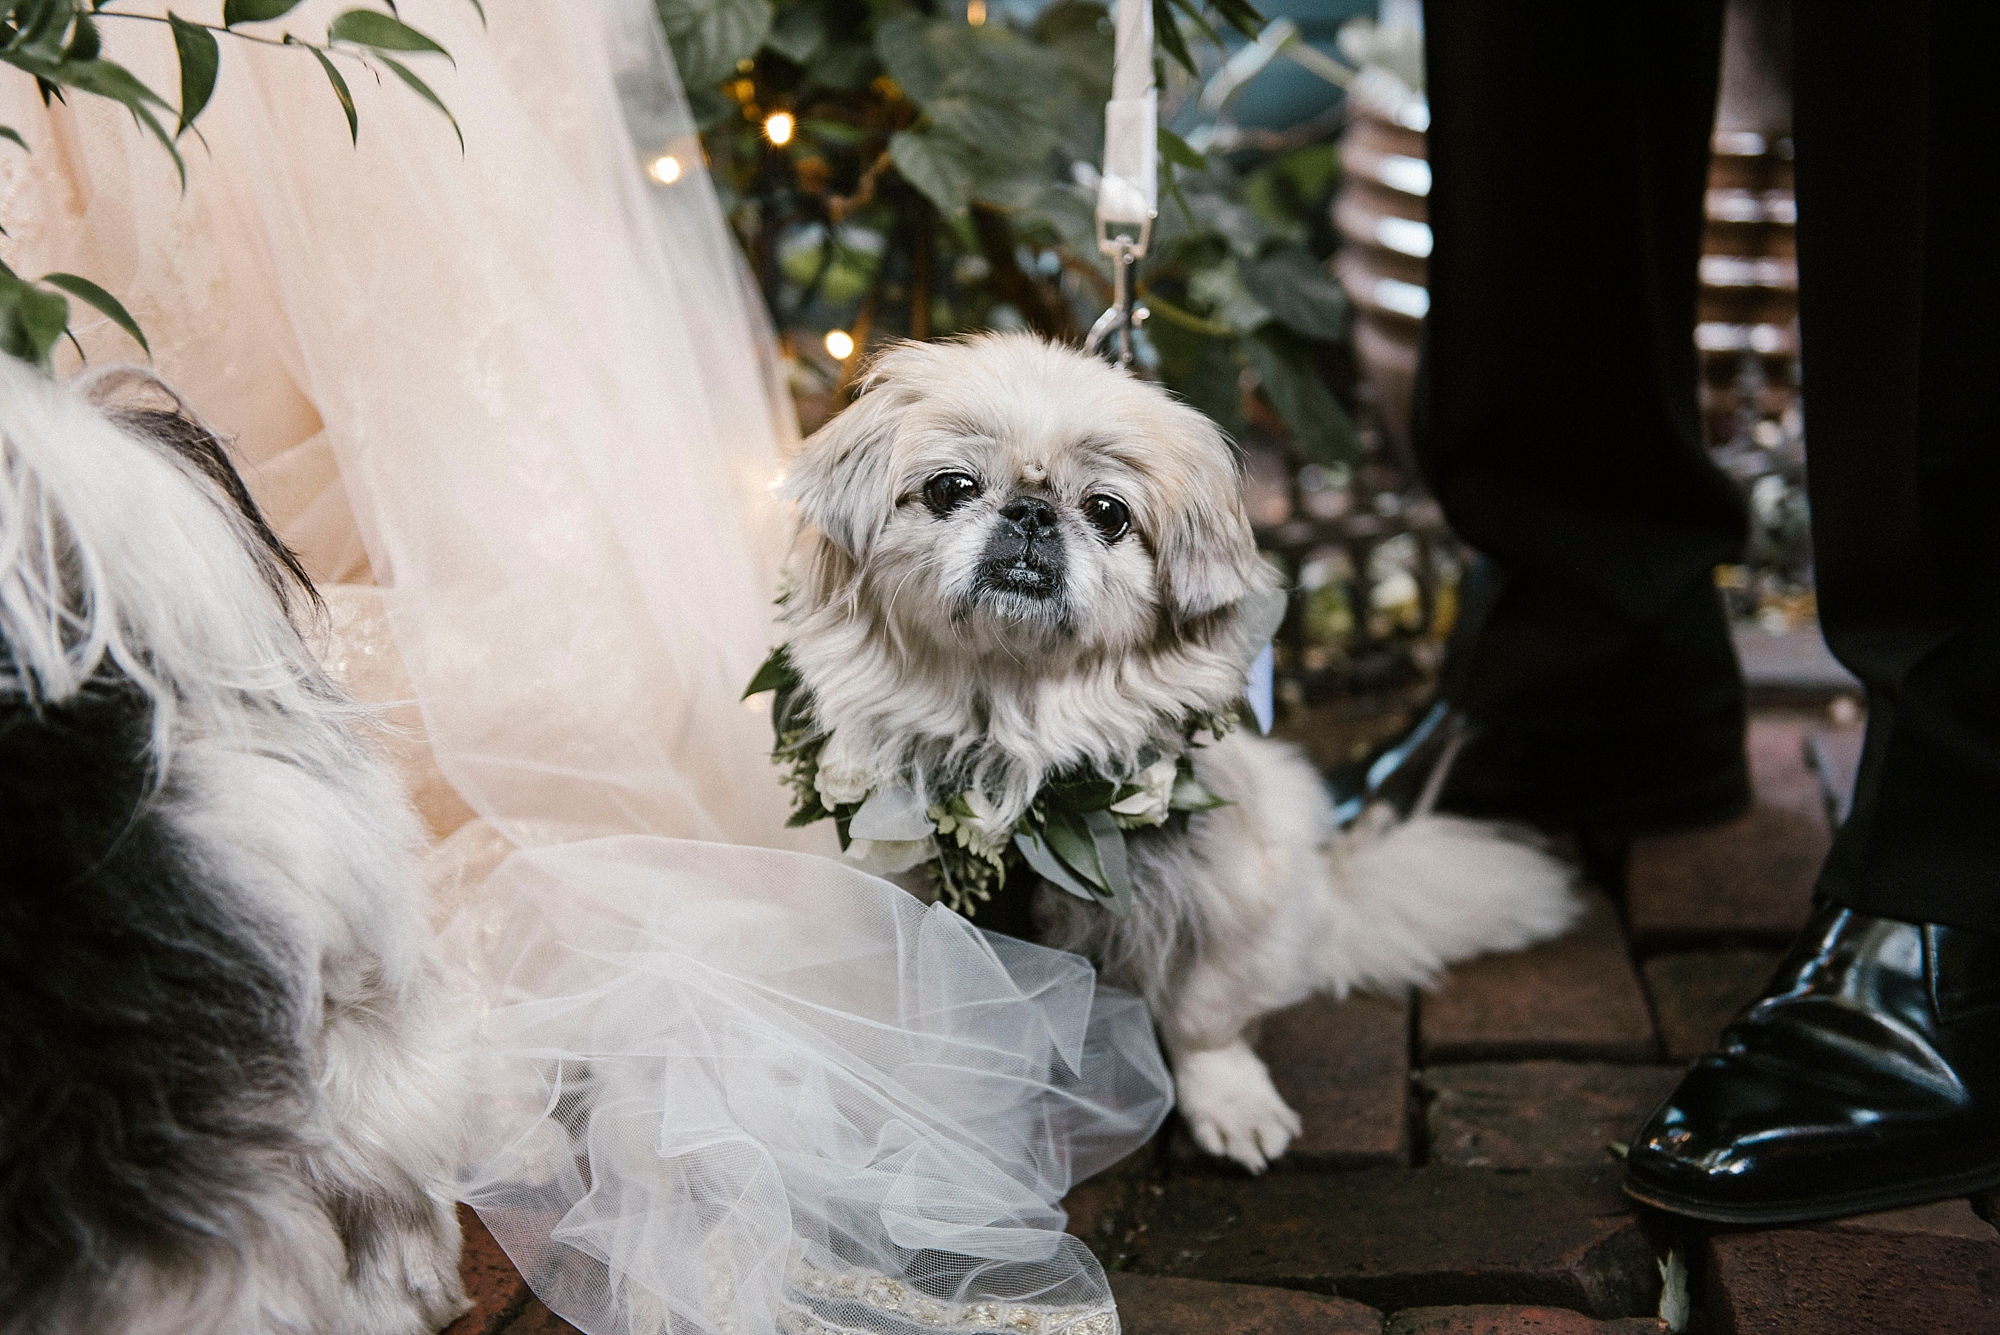 Dog with flower crown wedding